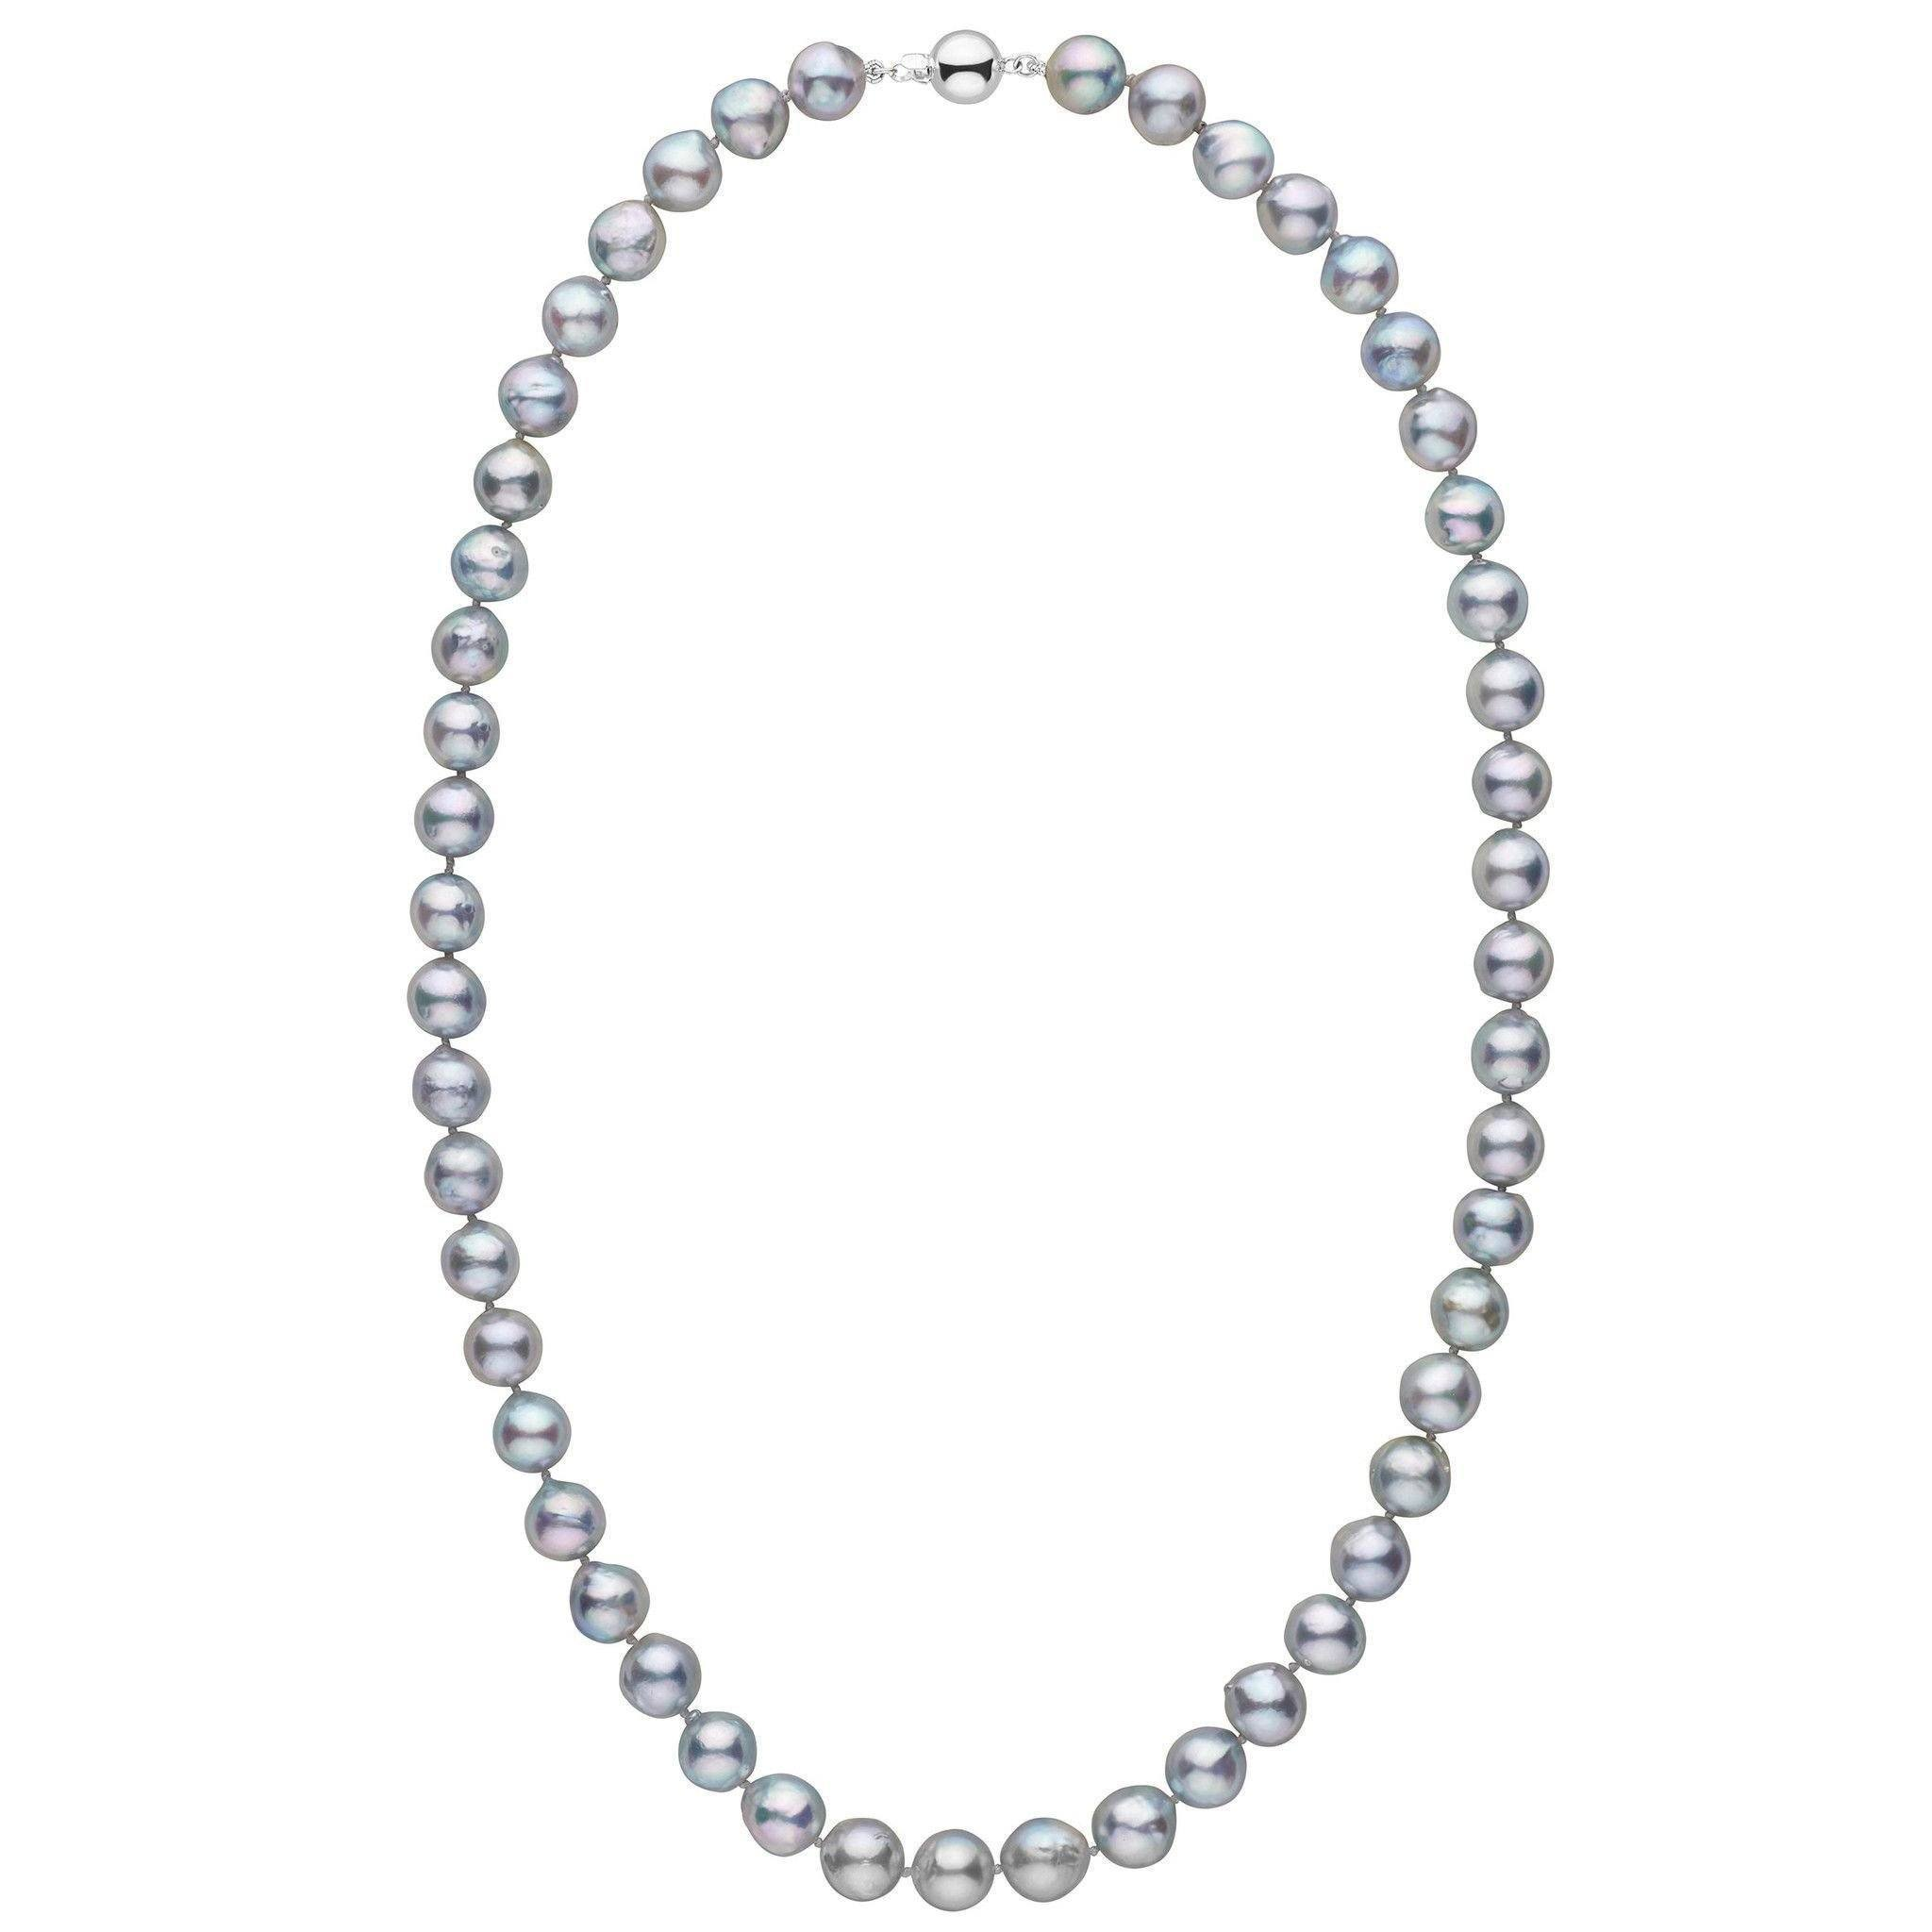 8.5-9.0 mm 20 Inch Silver-Blue Akoya Baroque Pearl Necklace